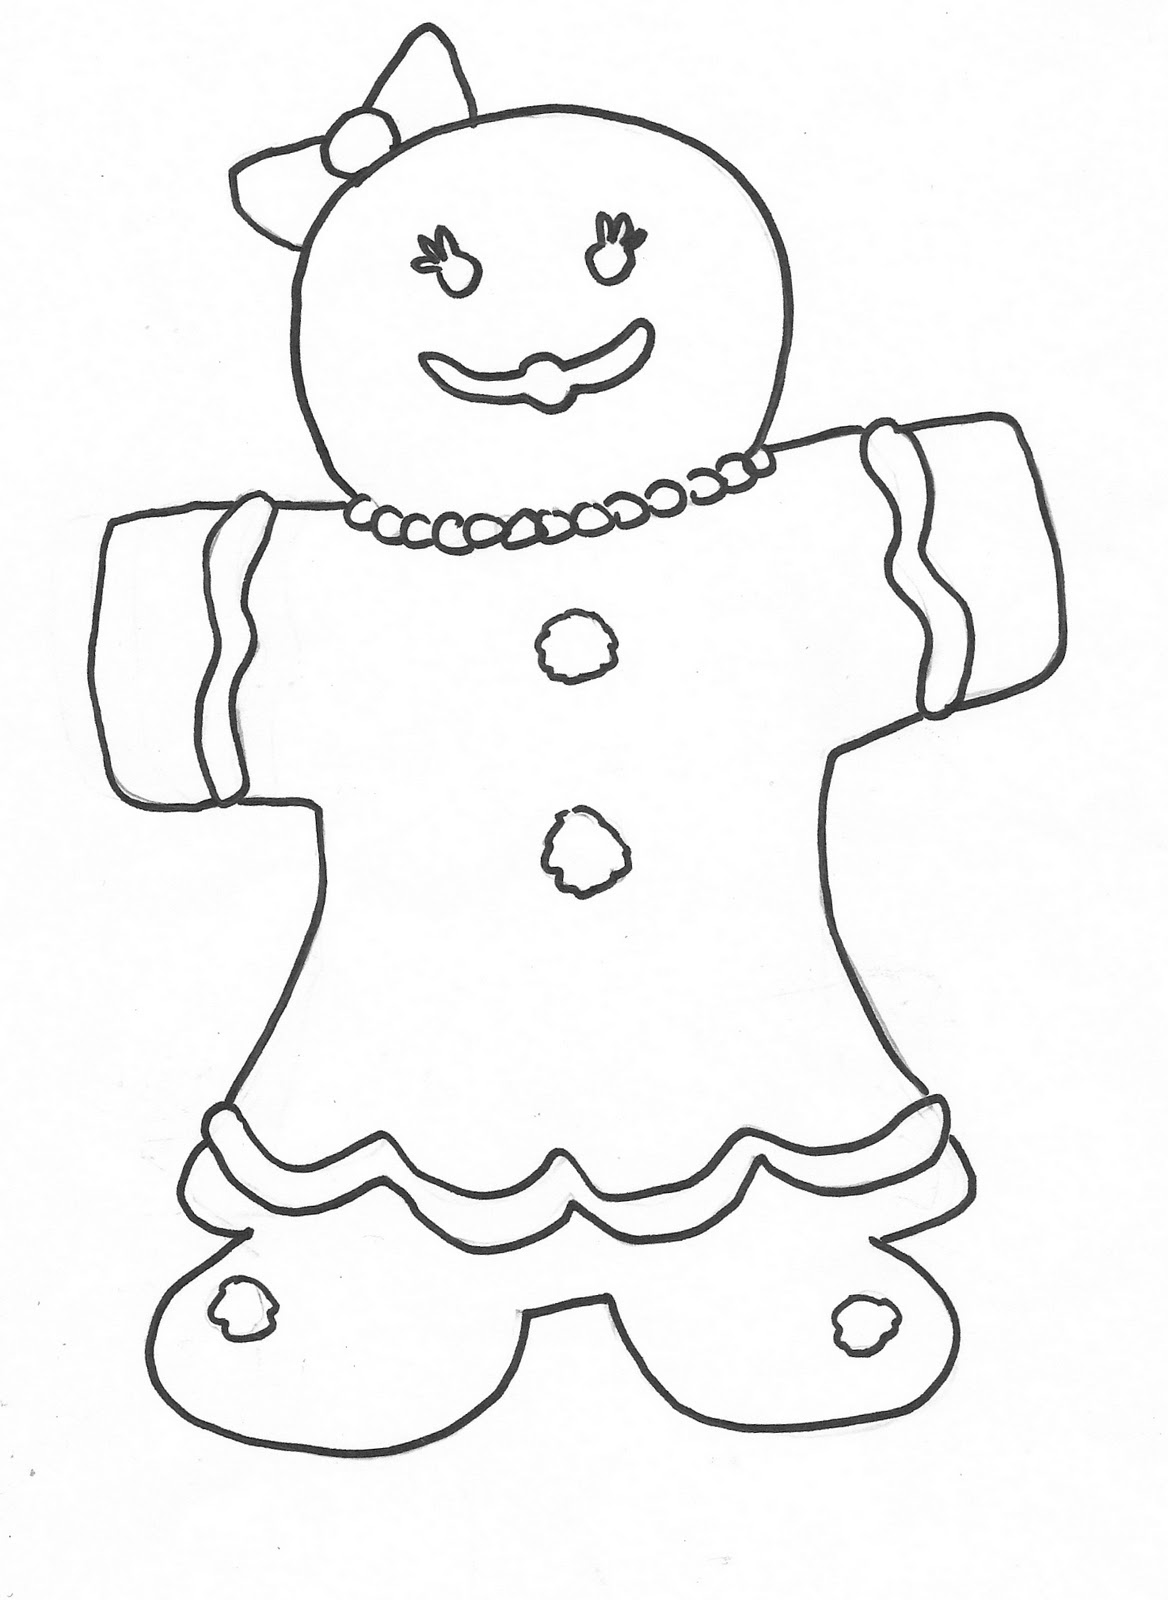 gingerbread man coloring pictures printable gingerbread man coloring pages at getcolorings man pictures gingerbread coloring